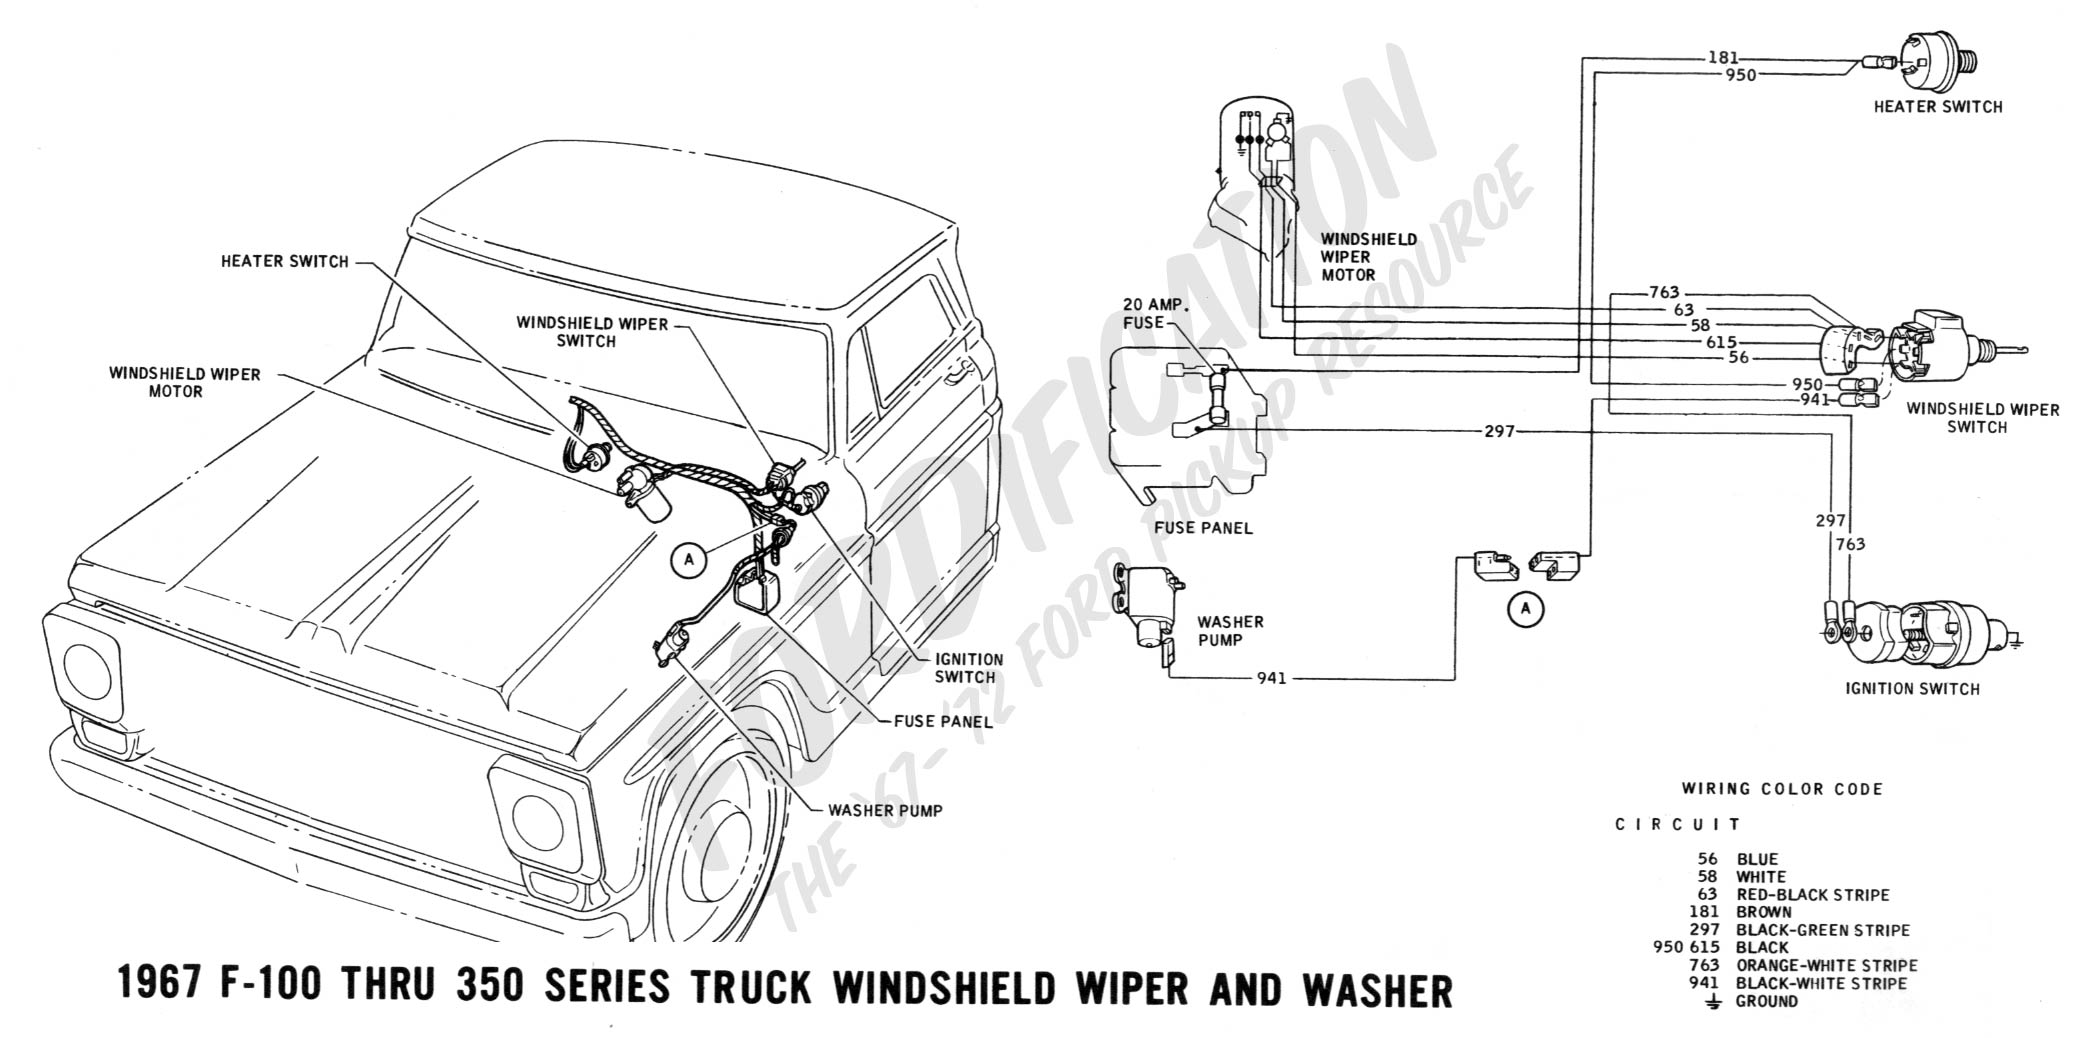 Wiring Diagram For 1995 Ford F350 Wiper Motor on 1986 jaguar xj6 fuse box